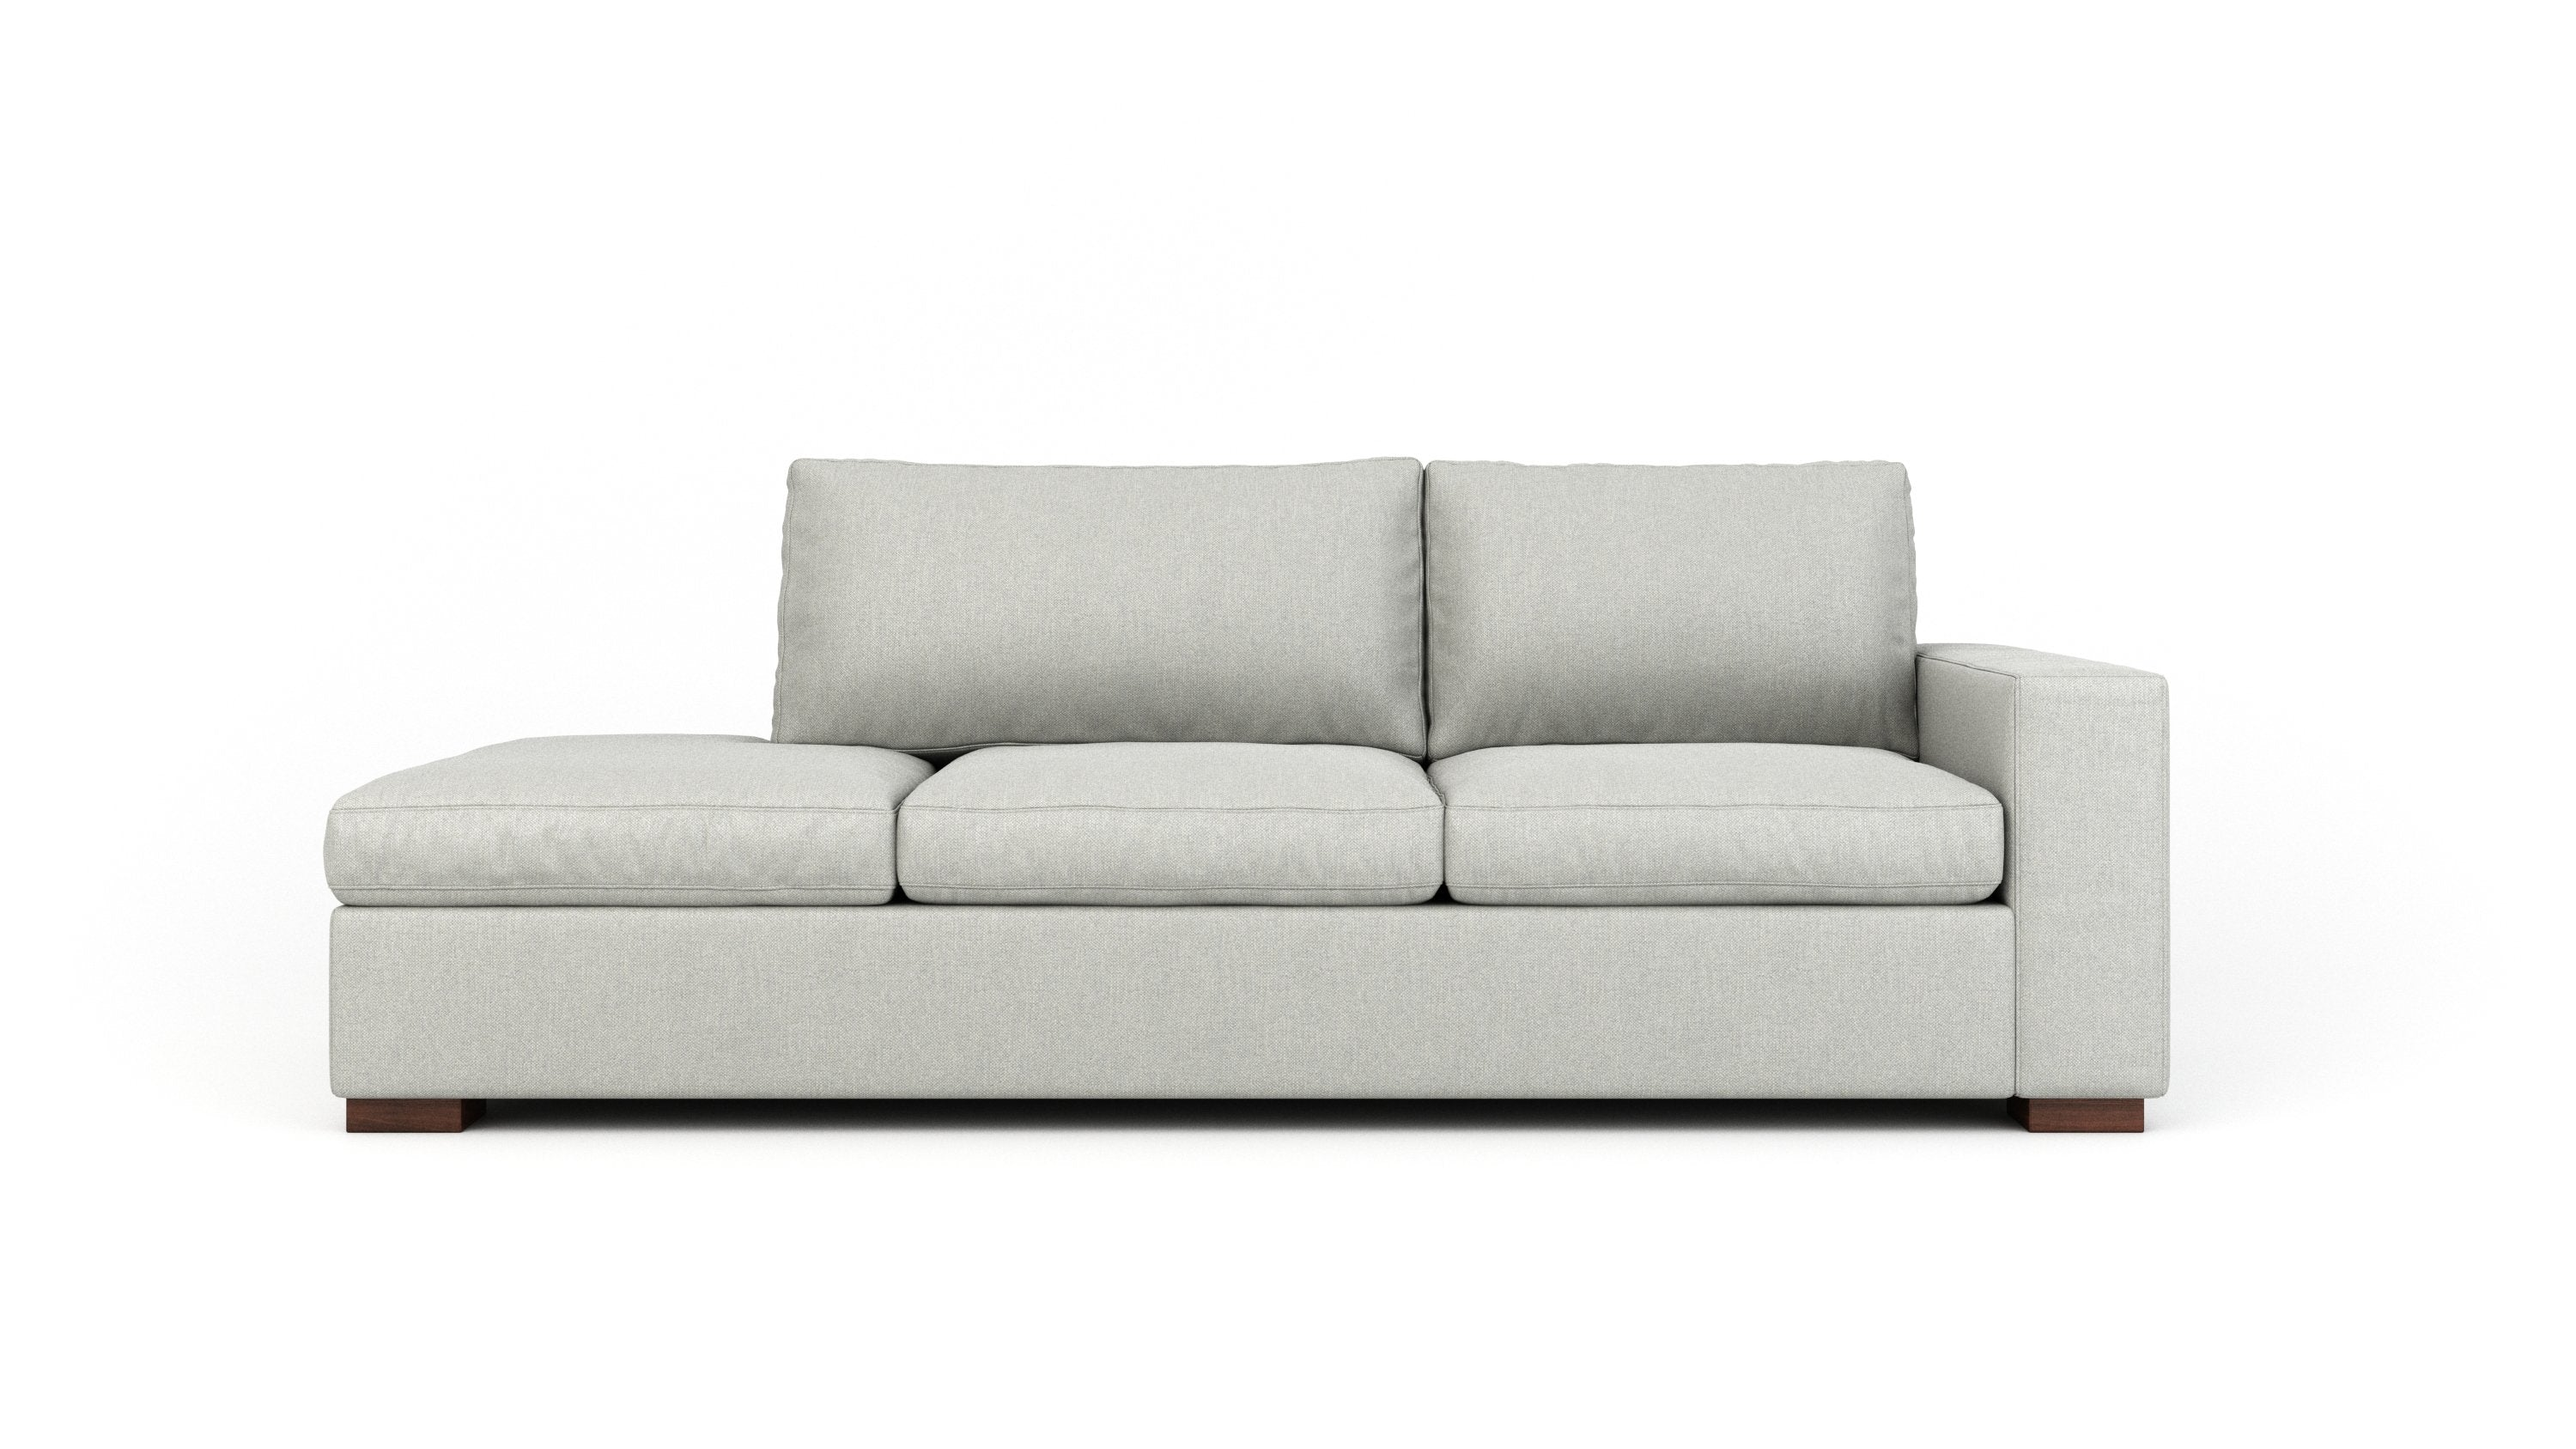 Couch Potato Sofa With Bumper